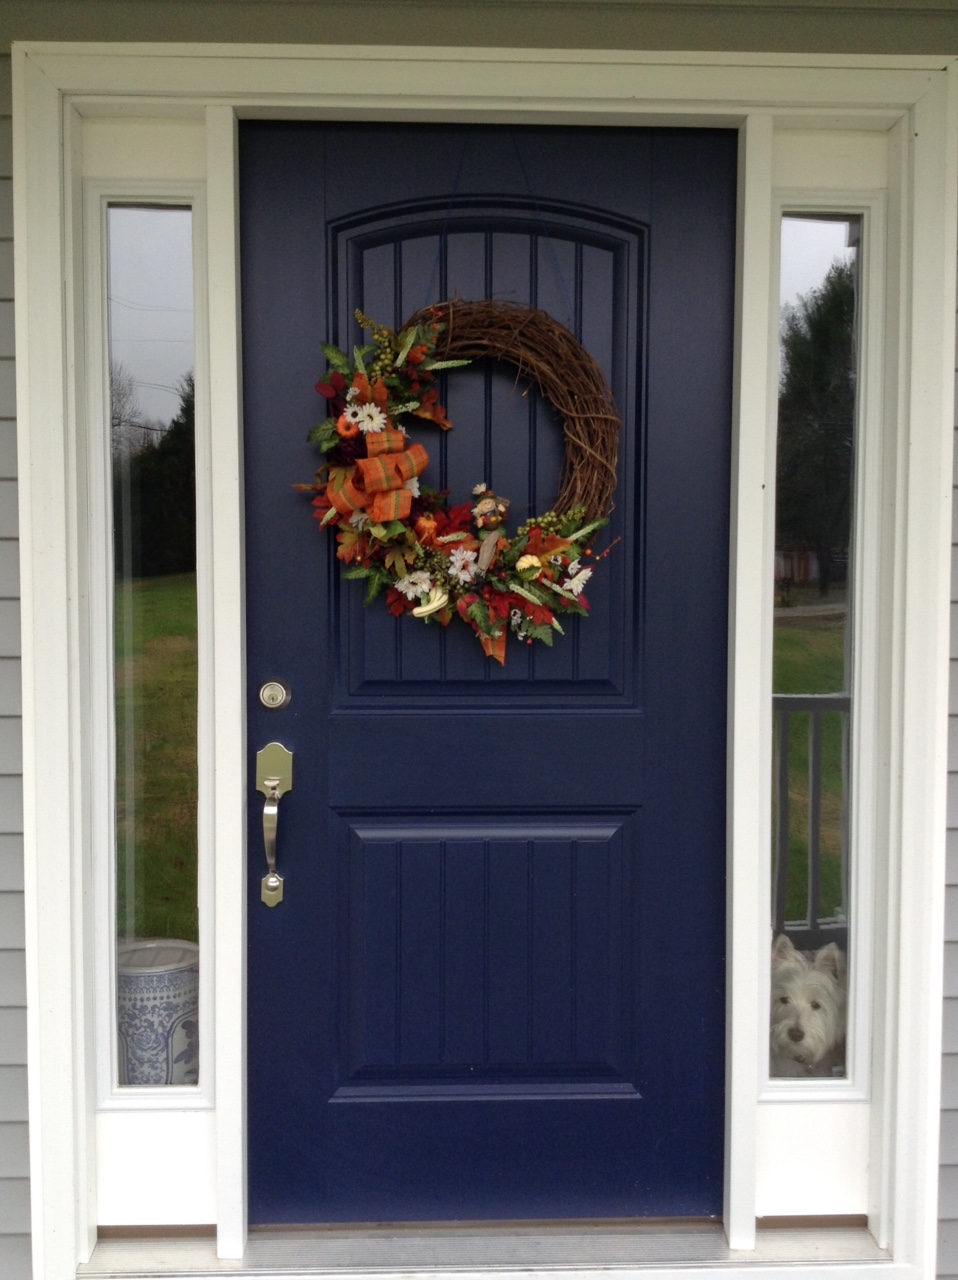 4 ashcrafts heres a picture of the fall wreath on the front door soon the christmas wreath will go up the door color is sherwin williams naval rubansaba